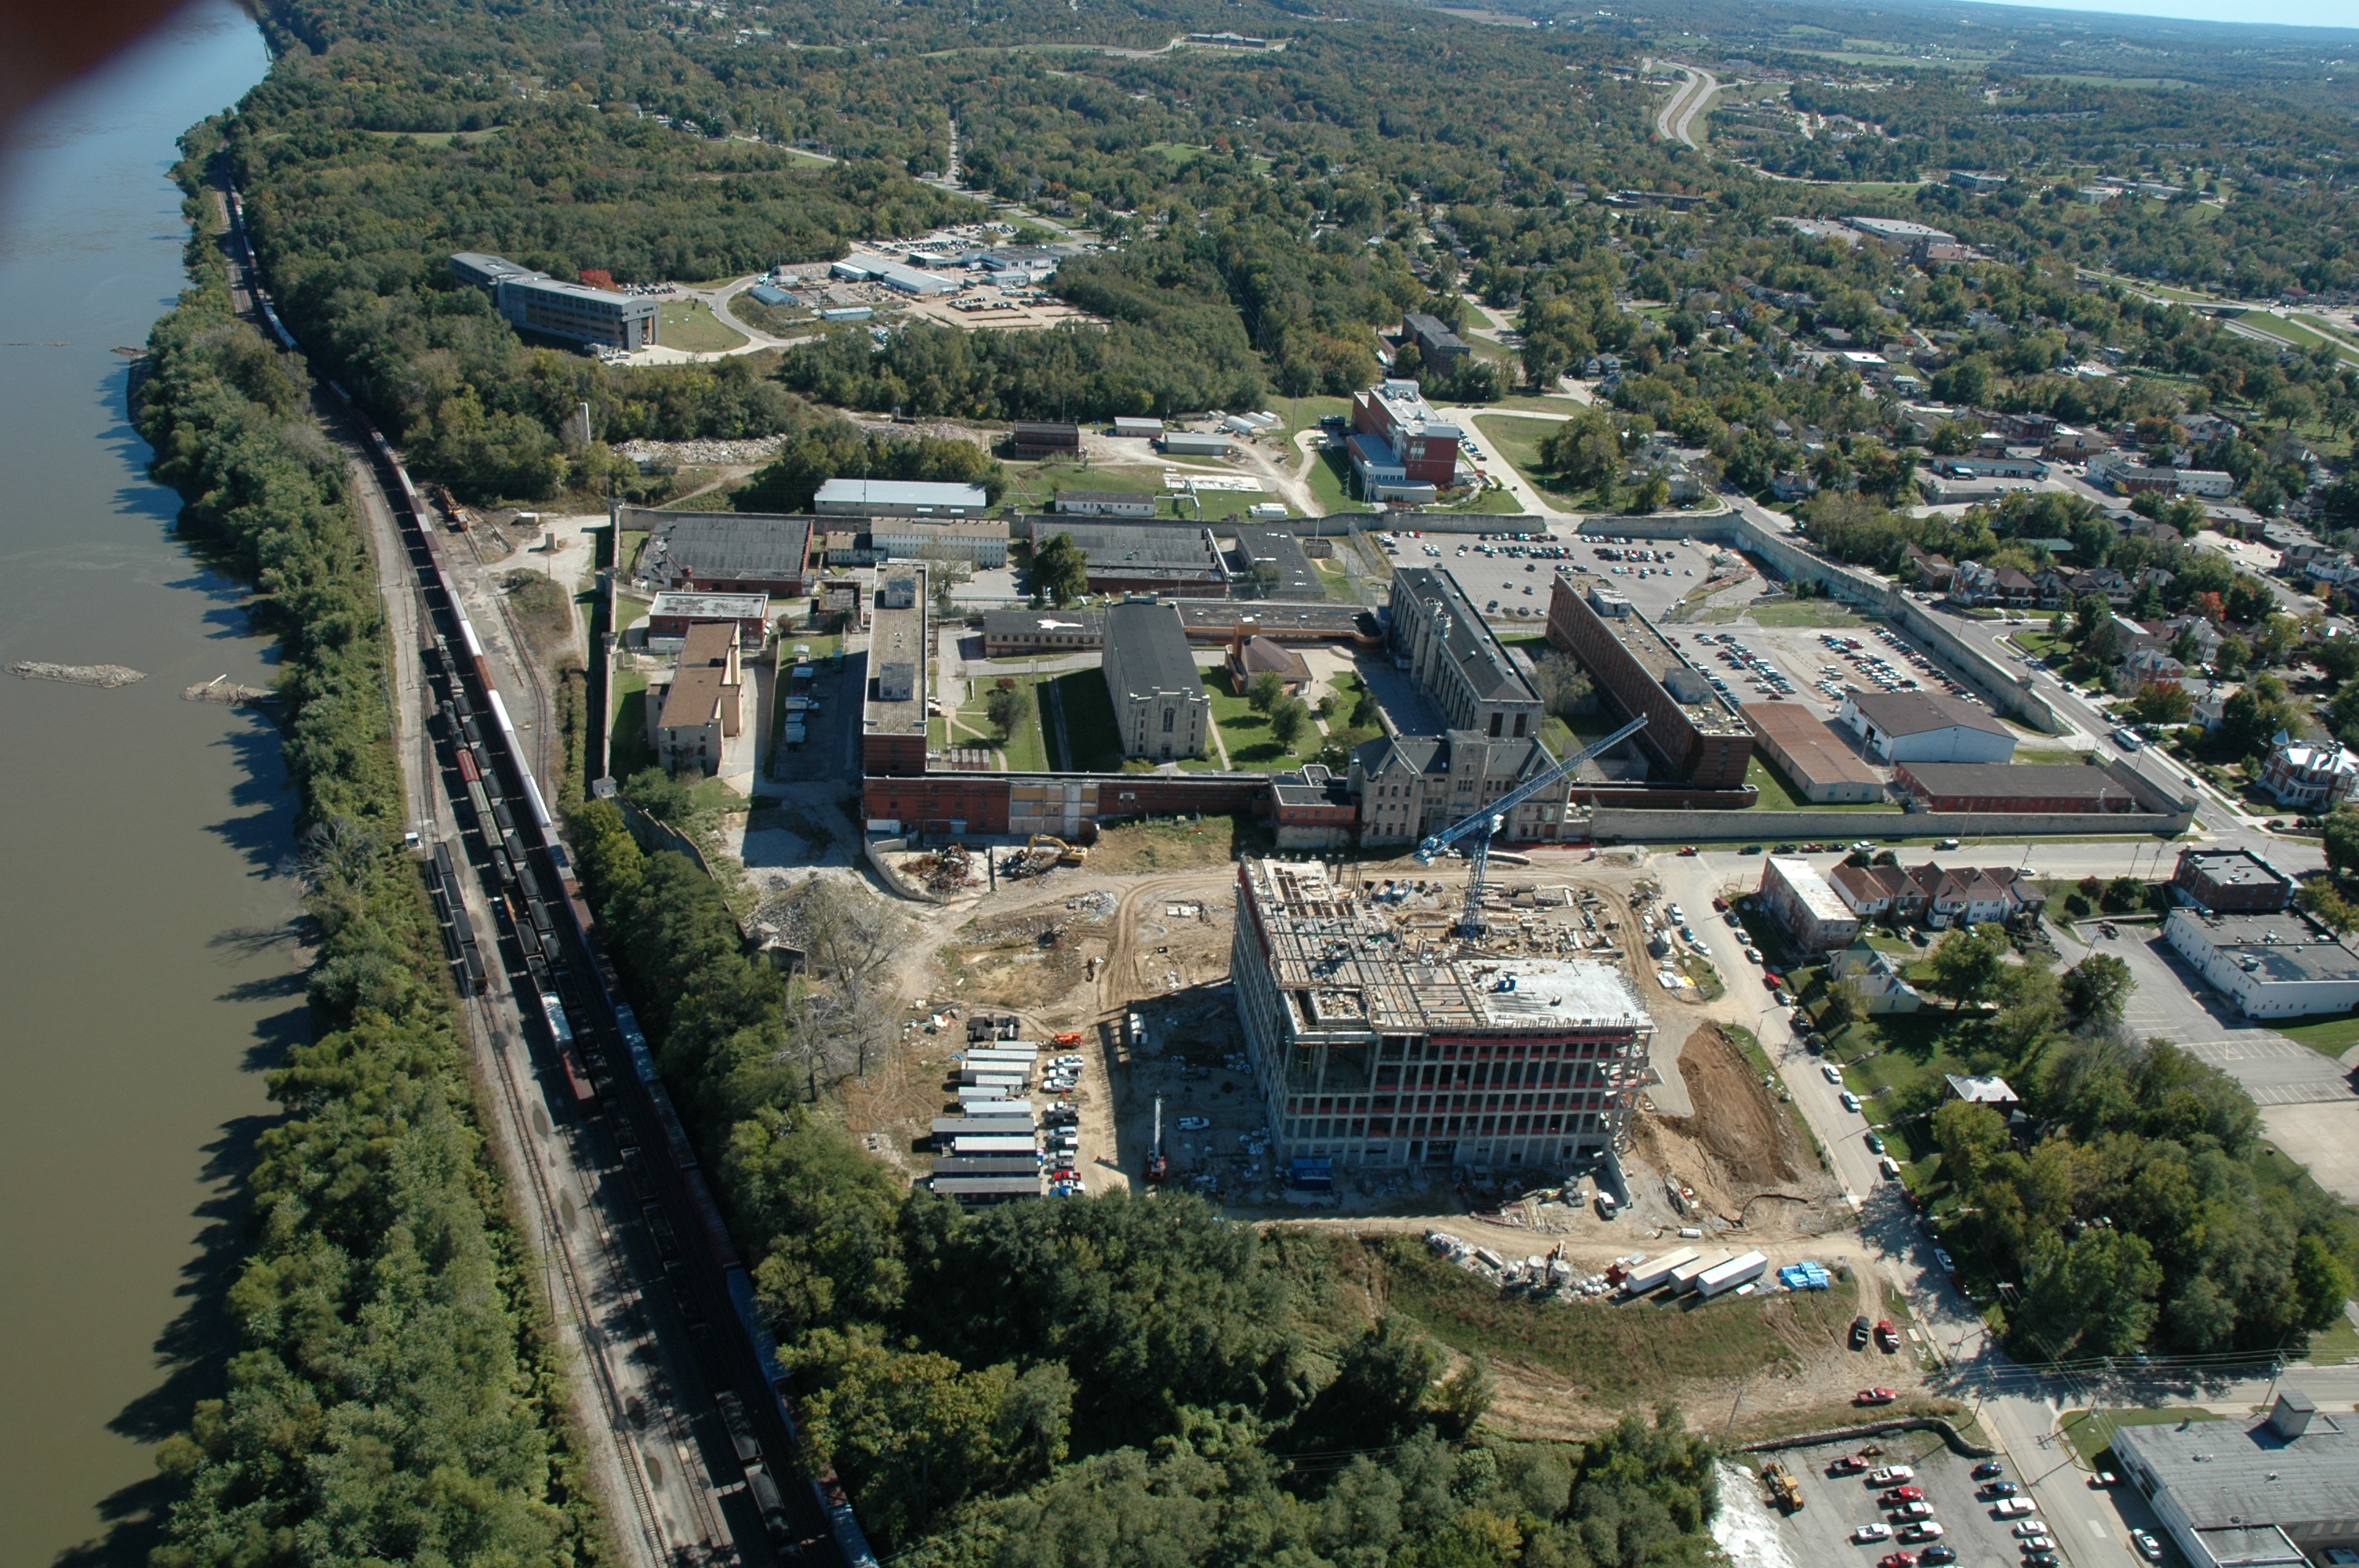 Aerial view of the entire site. The building under construction, now complete, is the new federal courthouse.